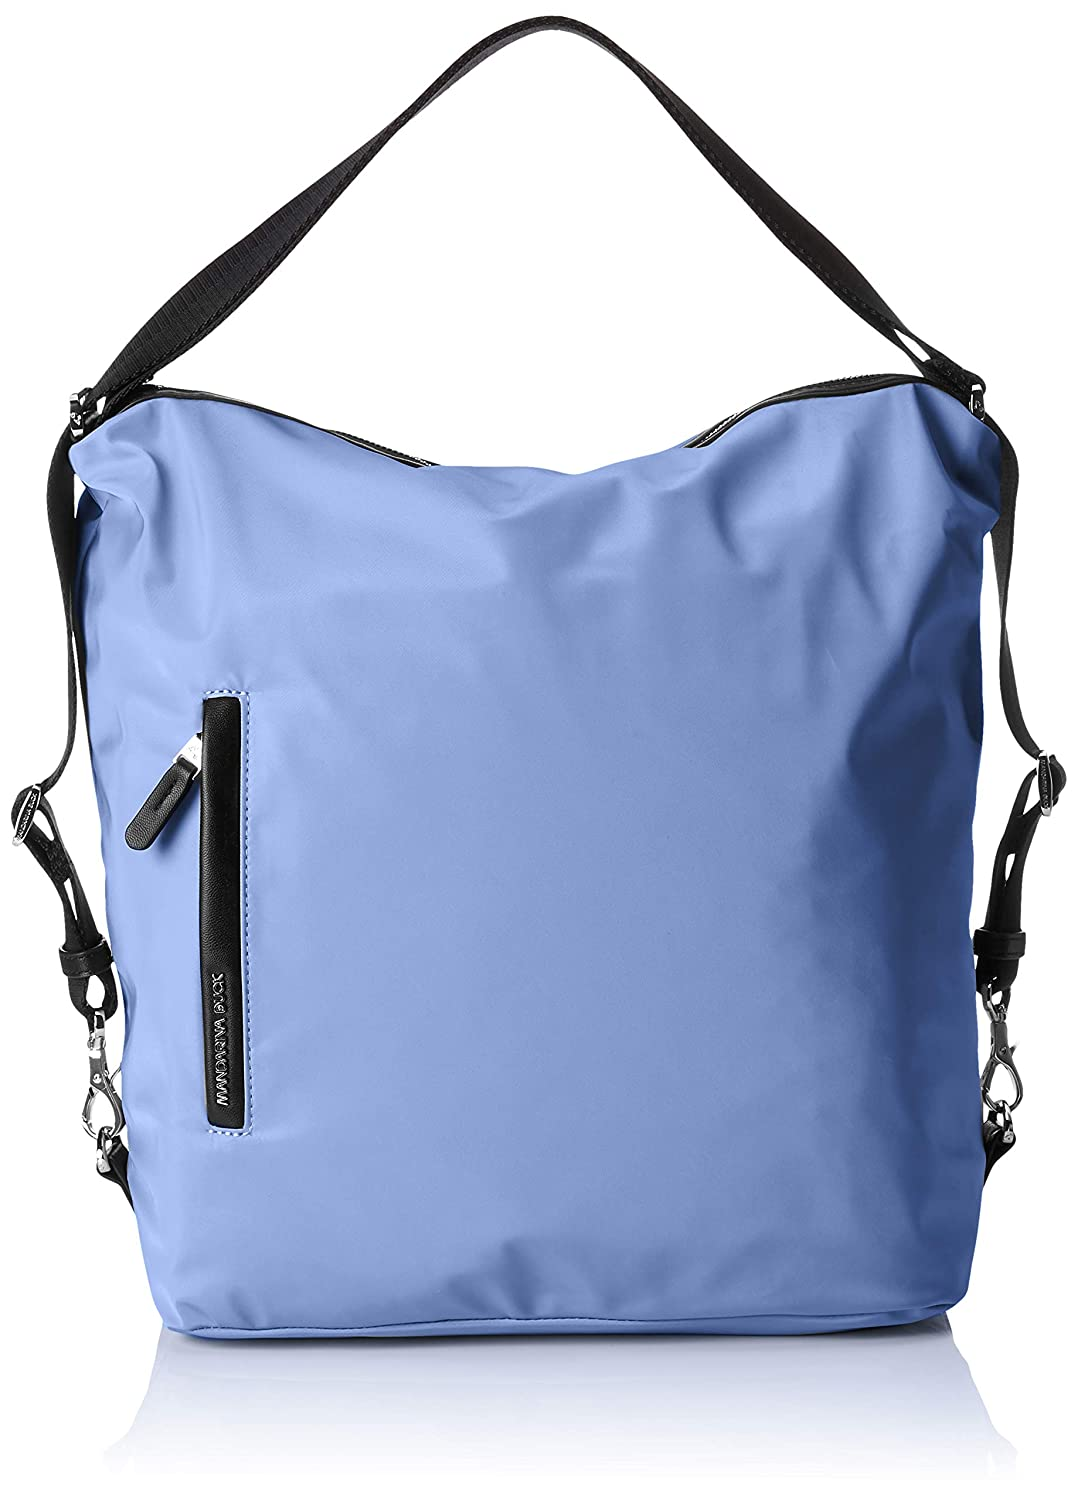 bluee (Colony bluee) Mandarina Duck Women's Hunter Tracolla CrossBody Bag